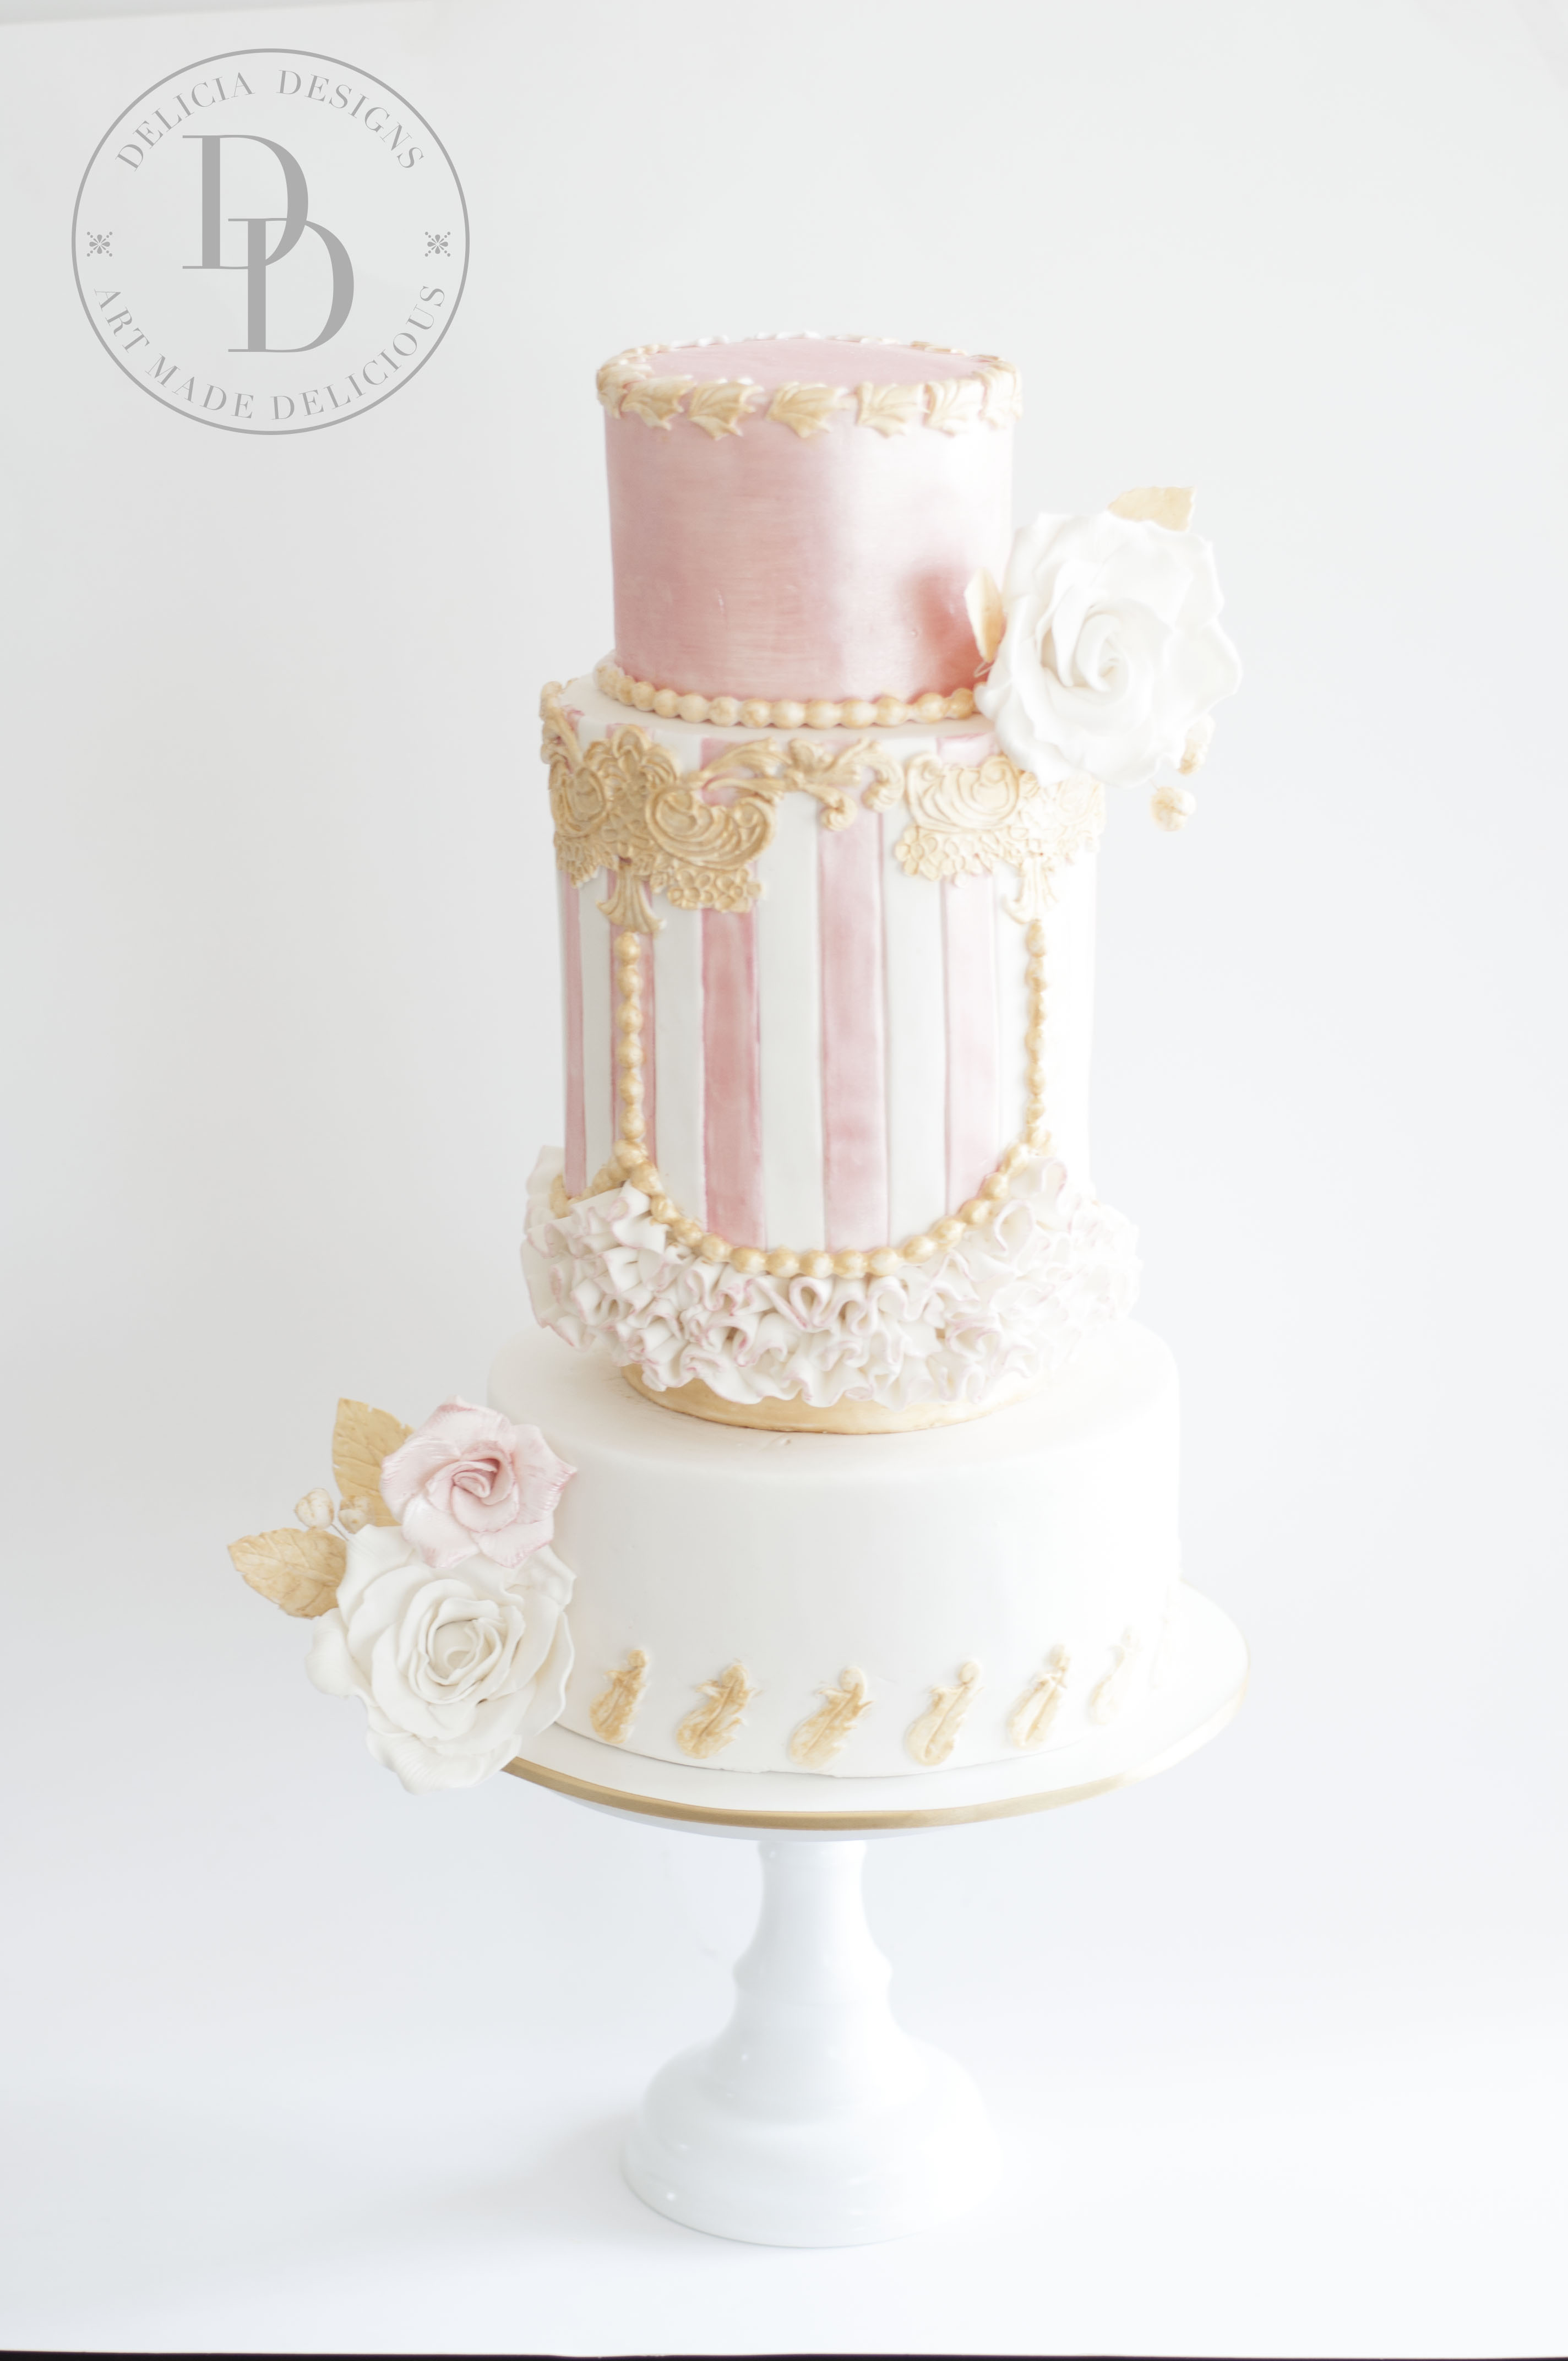 Rose gold and baby pink striped cake